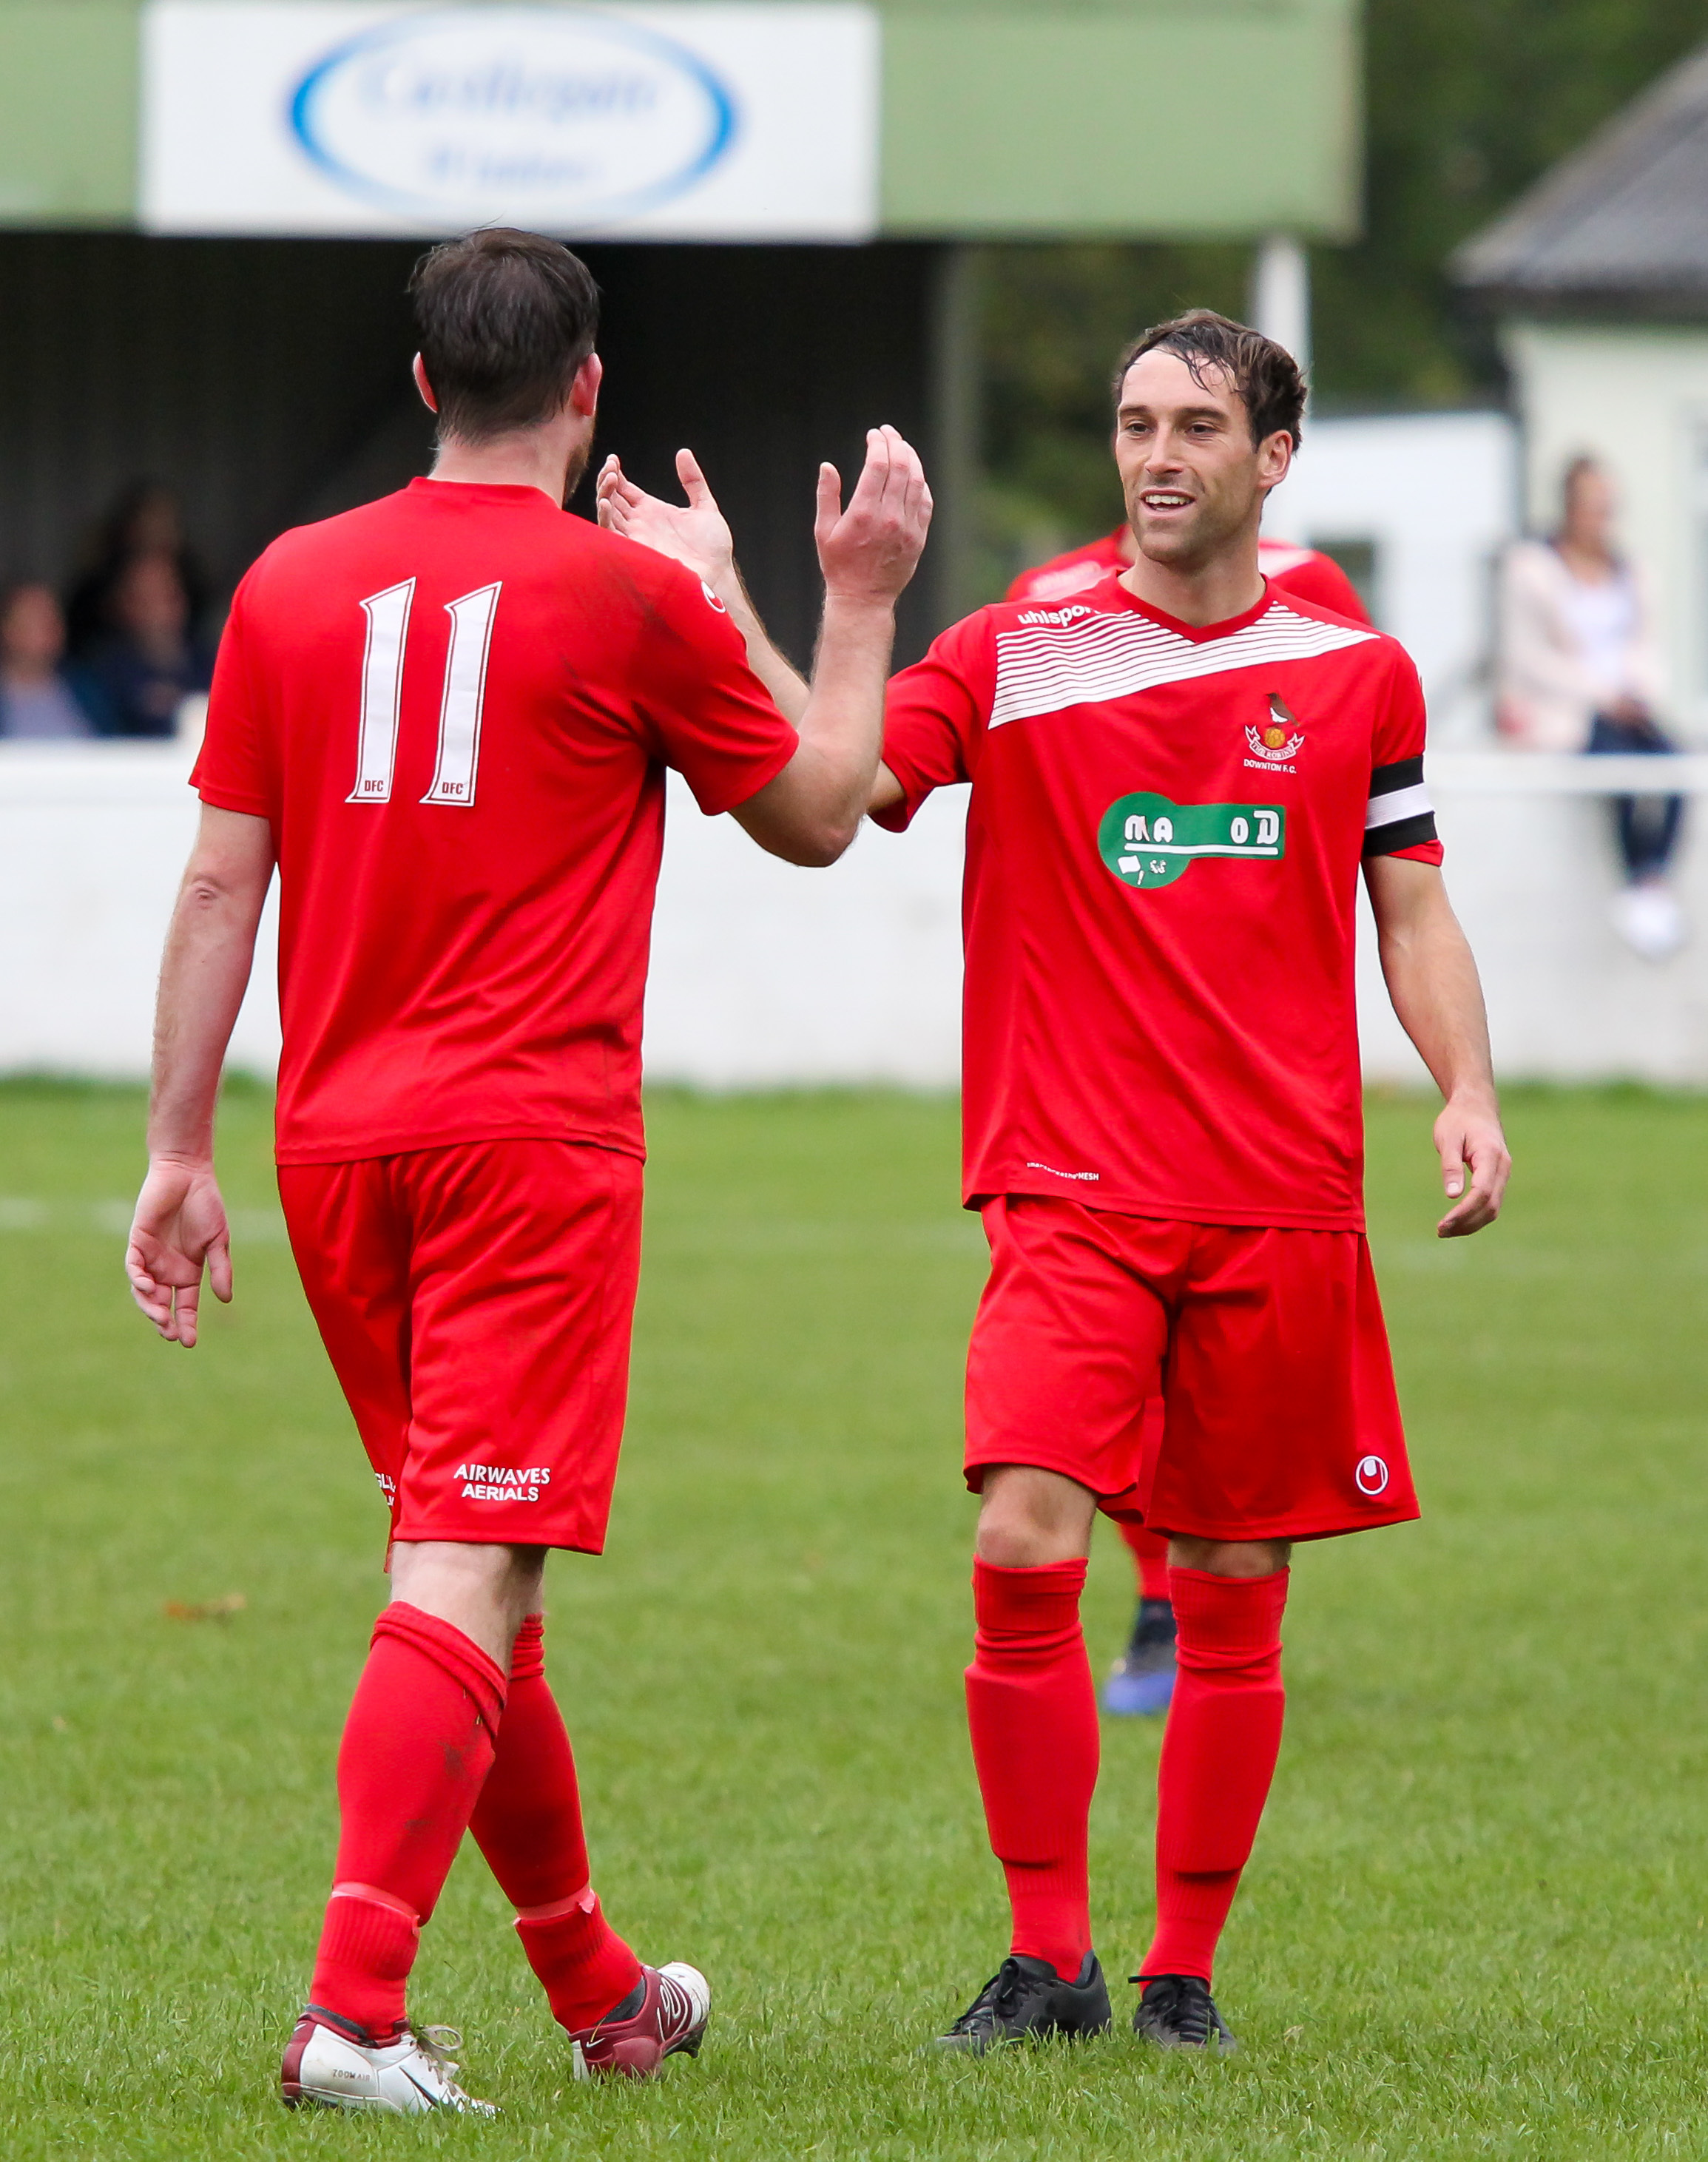 Craig Tyson congratulates Paul Gulliver on his goal during the Whichurch game. Picture by Dave Cavanagh